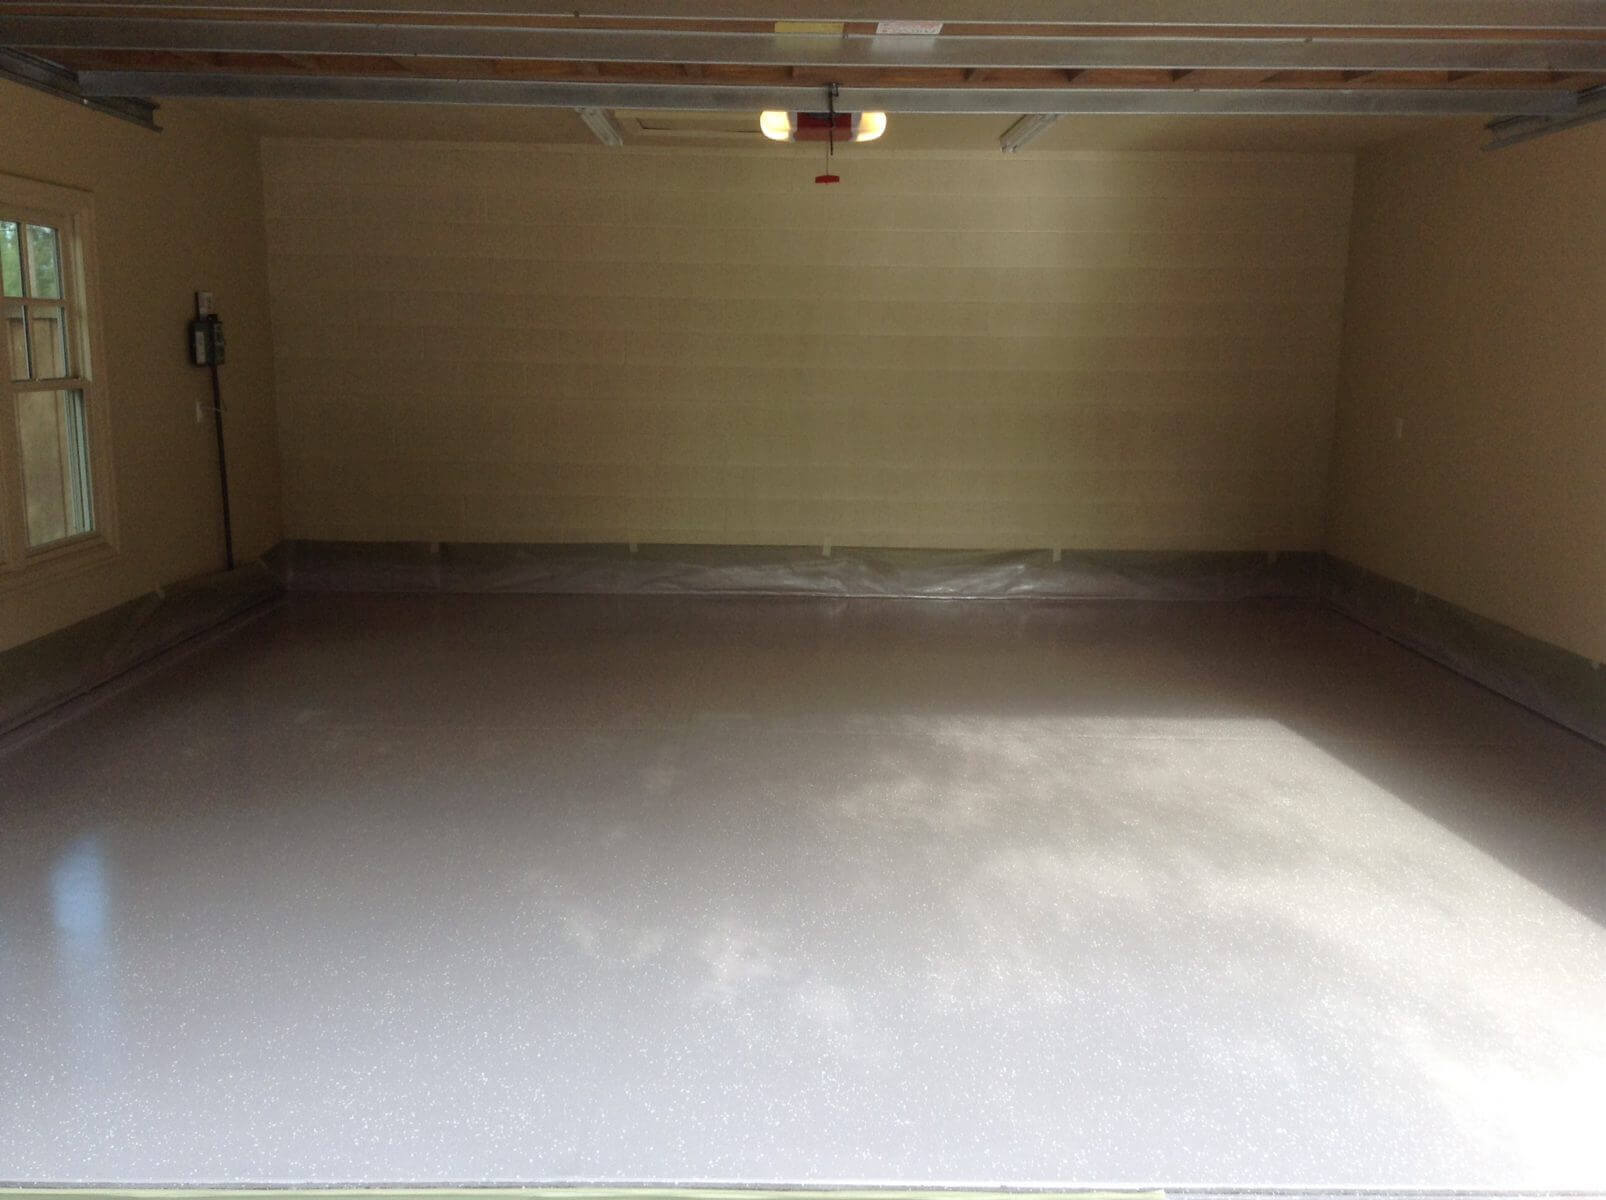 Saint george epoxy flooring and coatings in southern utah epoxy dolphin gray garage floor with white chips solutioingenieria Gallery